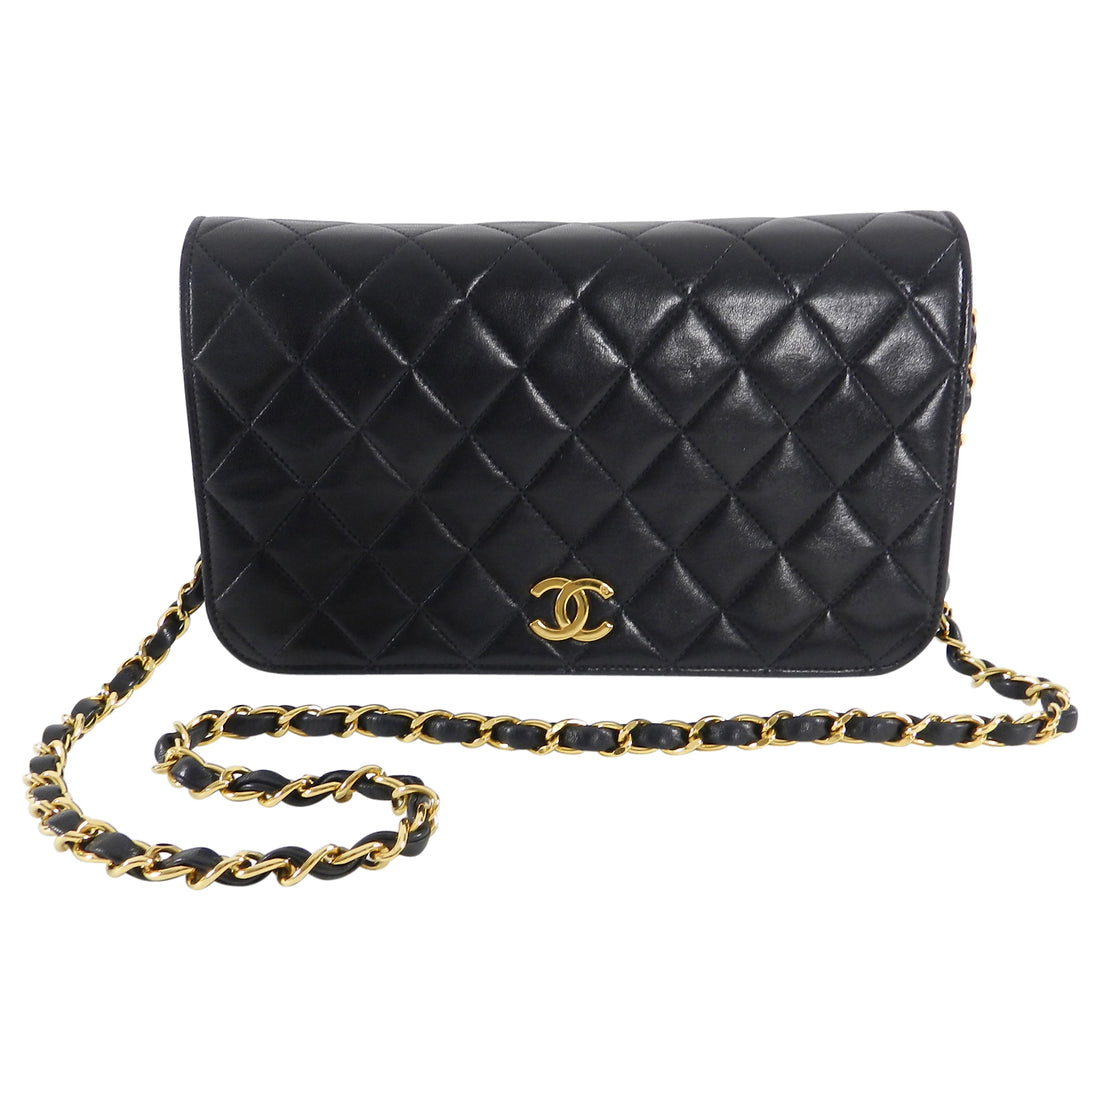 Chanel Vintage 1996 Black Quilted Lambskin Flap Bag